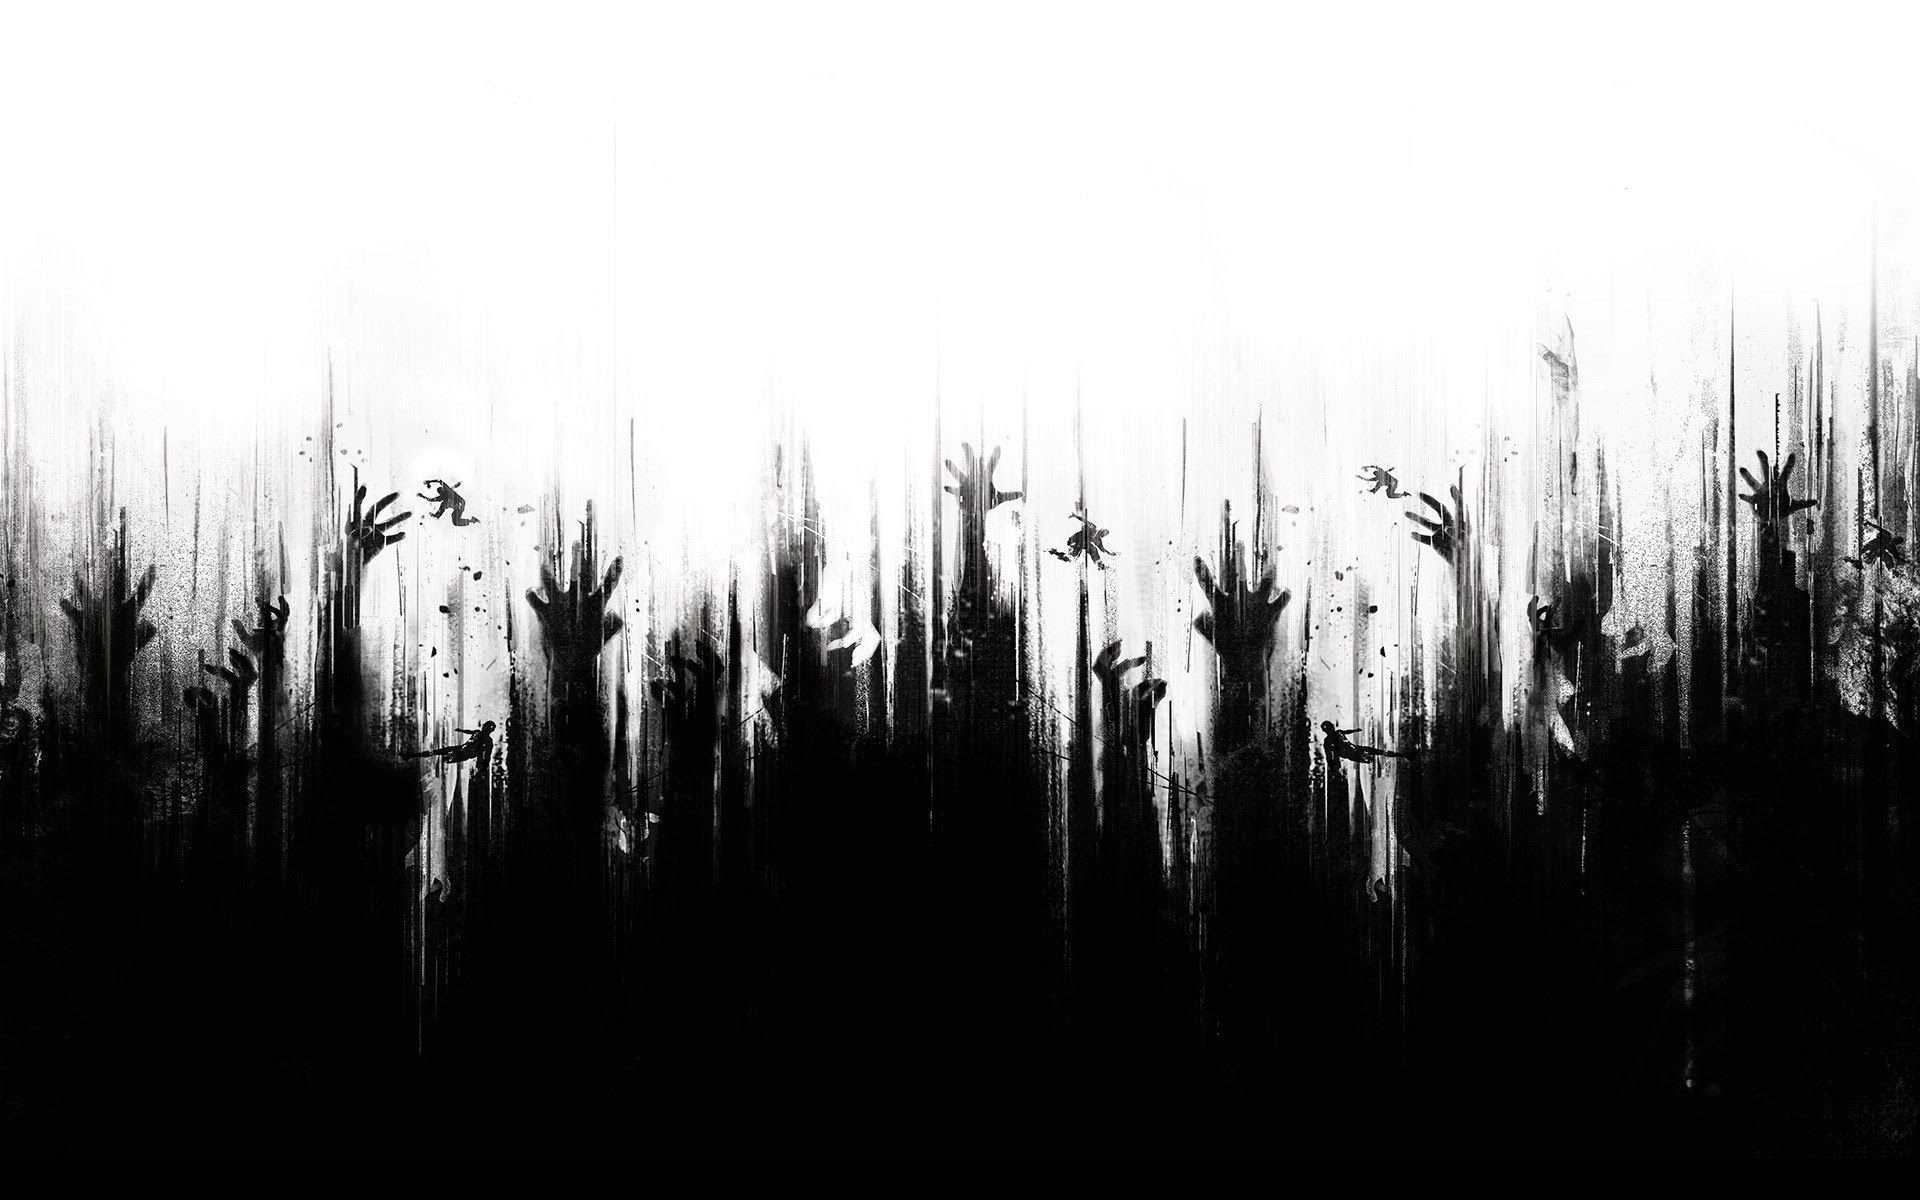 1920x1200 mobile, horror, scary, digital images,dark, free vectors, evil, spooky,windows  desktop images, darknes wallpapers, creepy Wallpaper HD